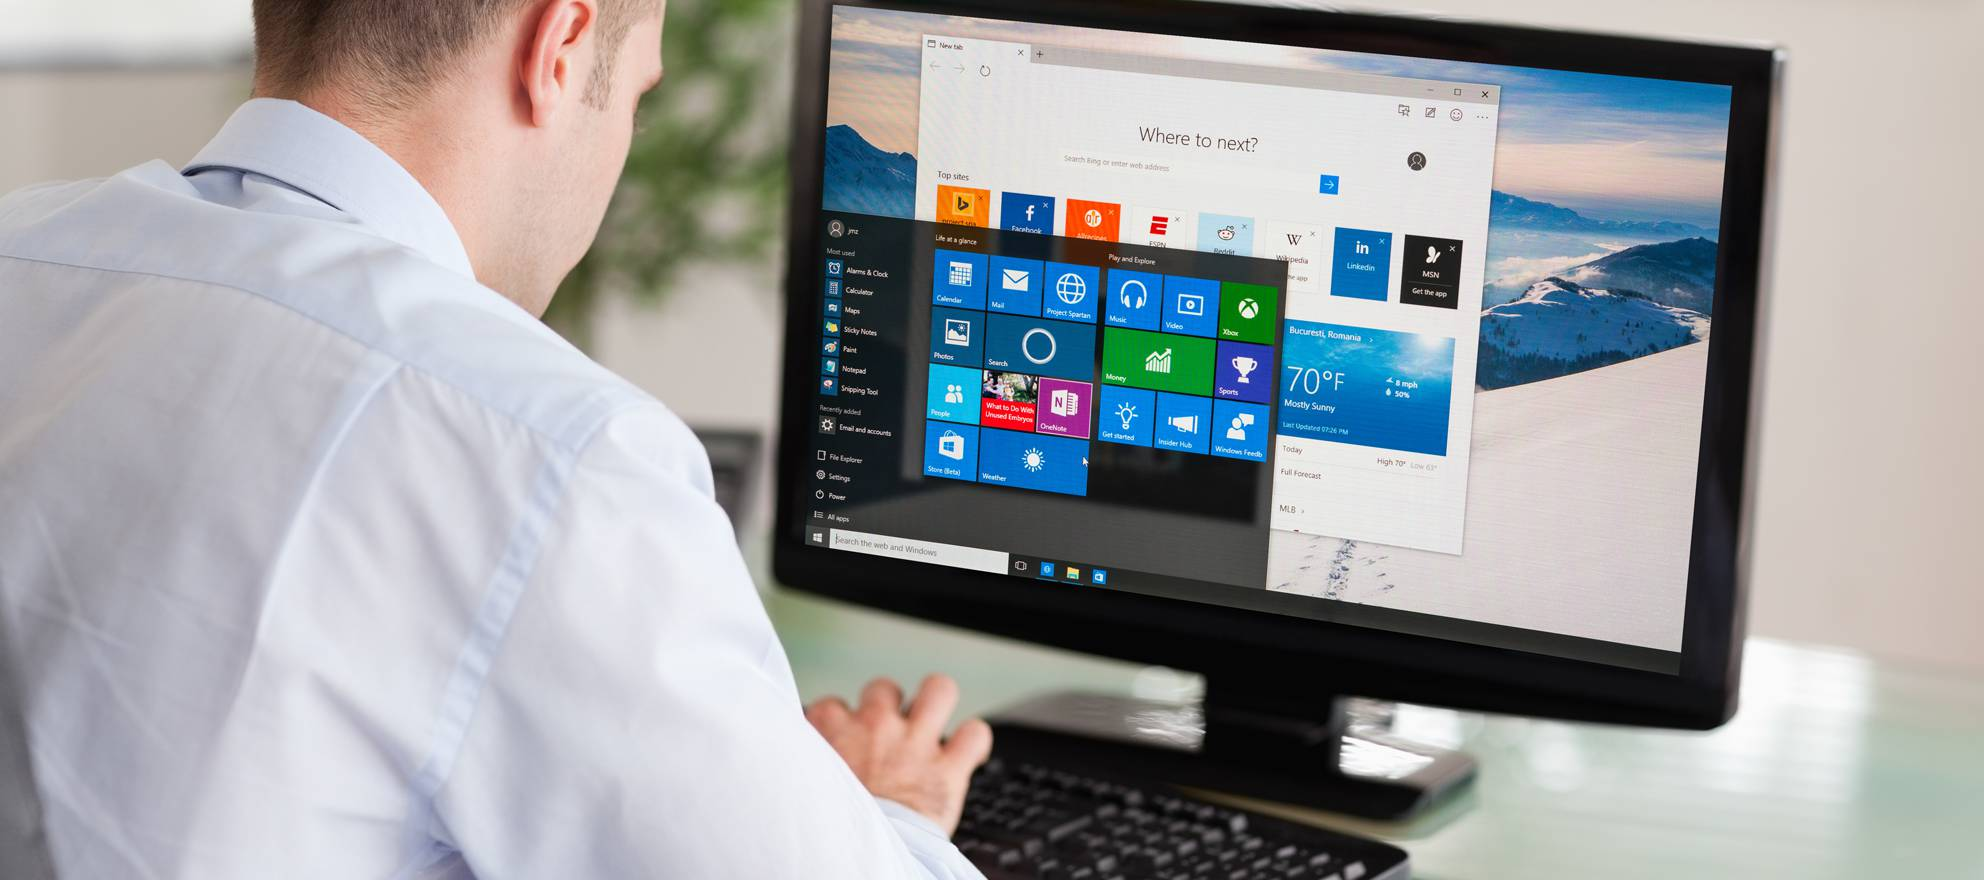 3 simple steps to easily install Windows 10